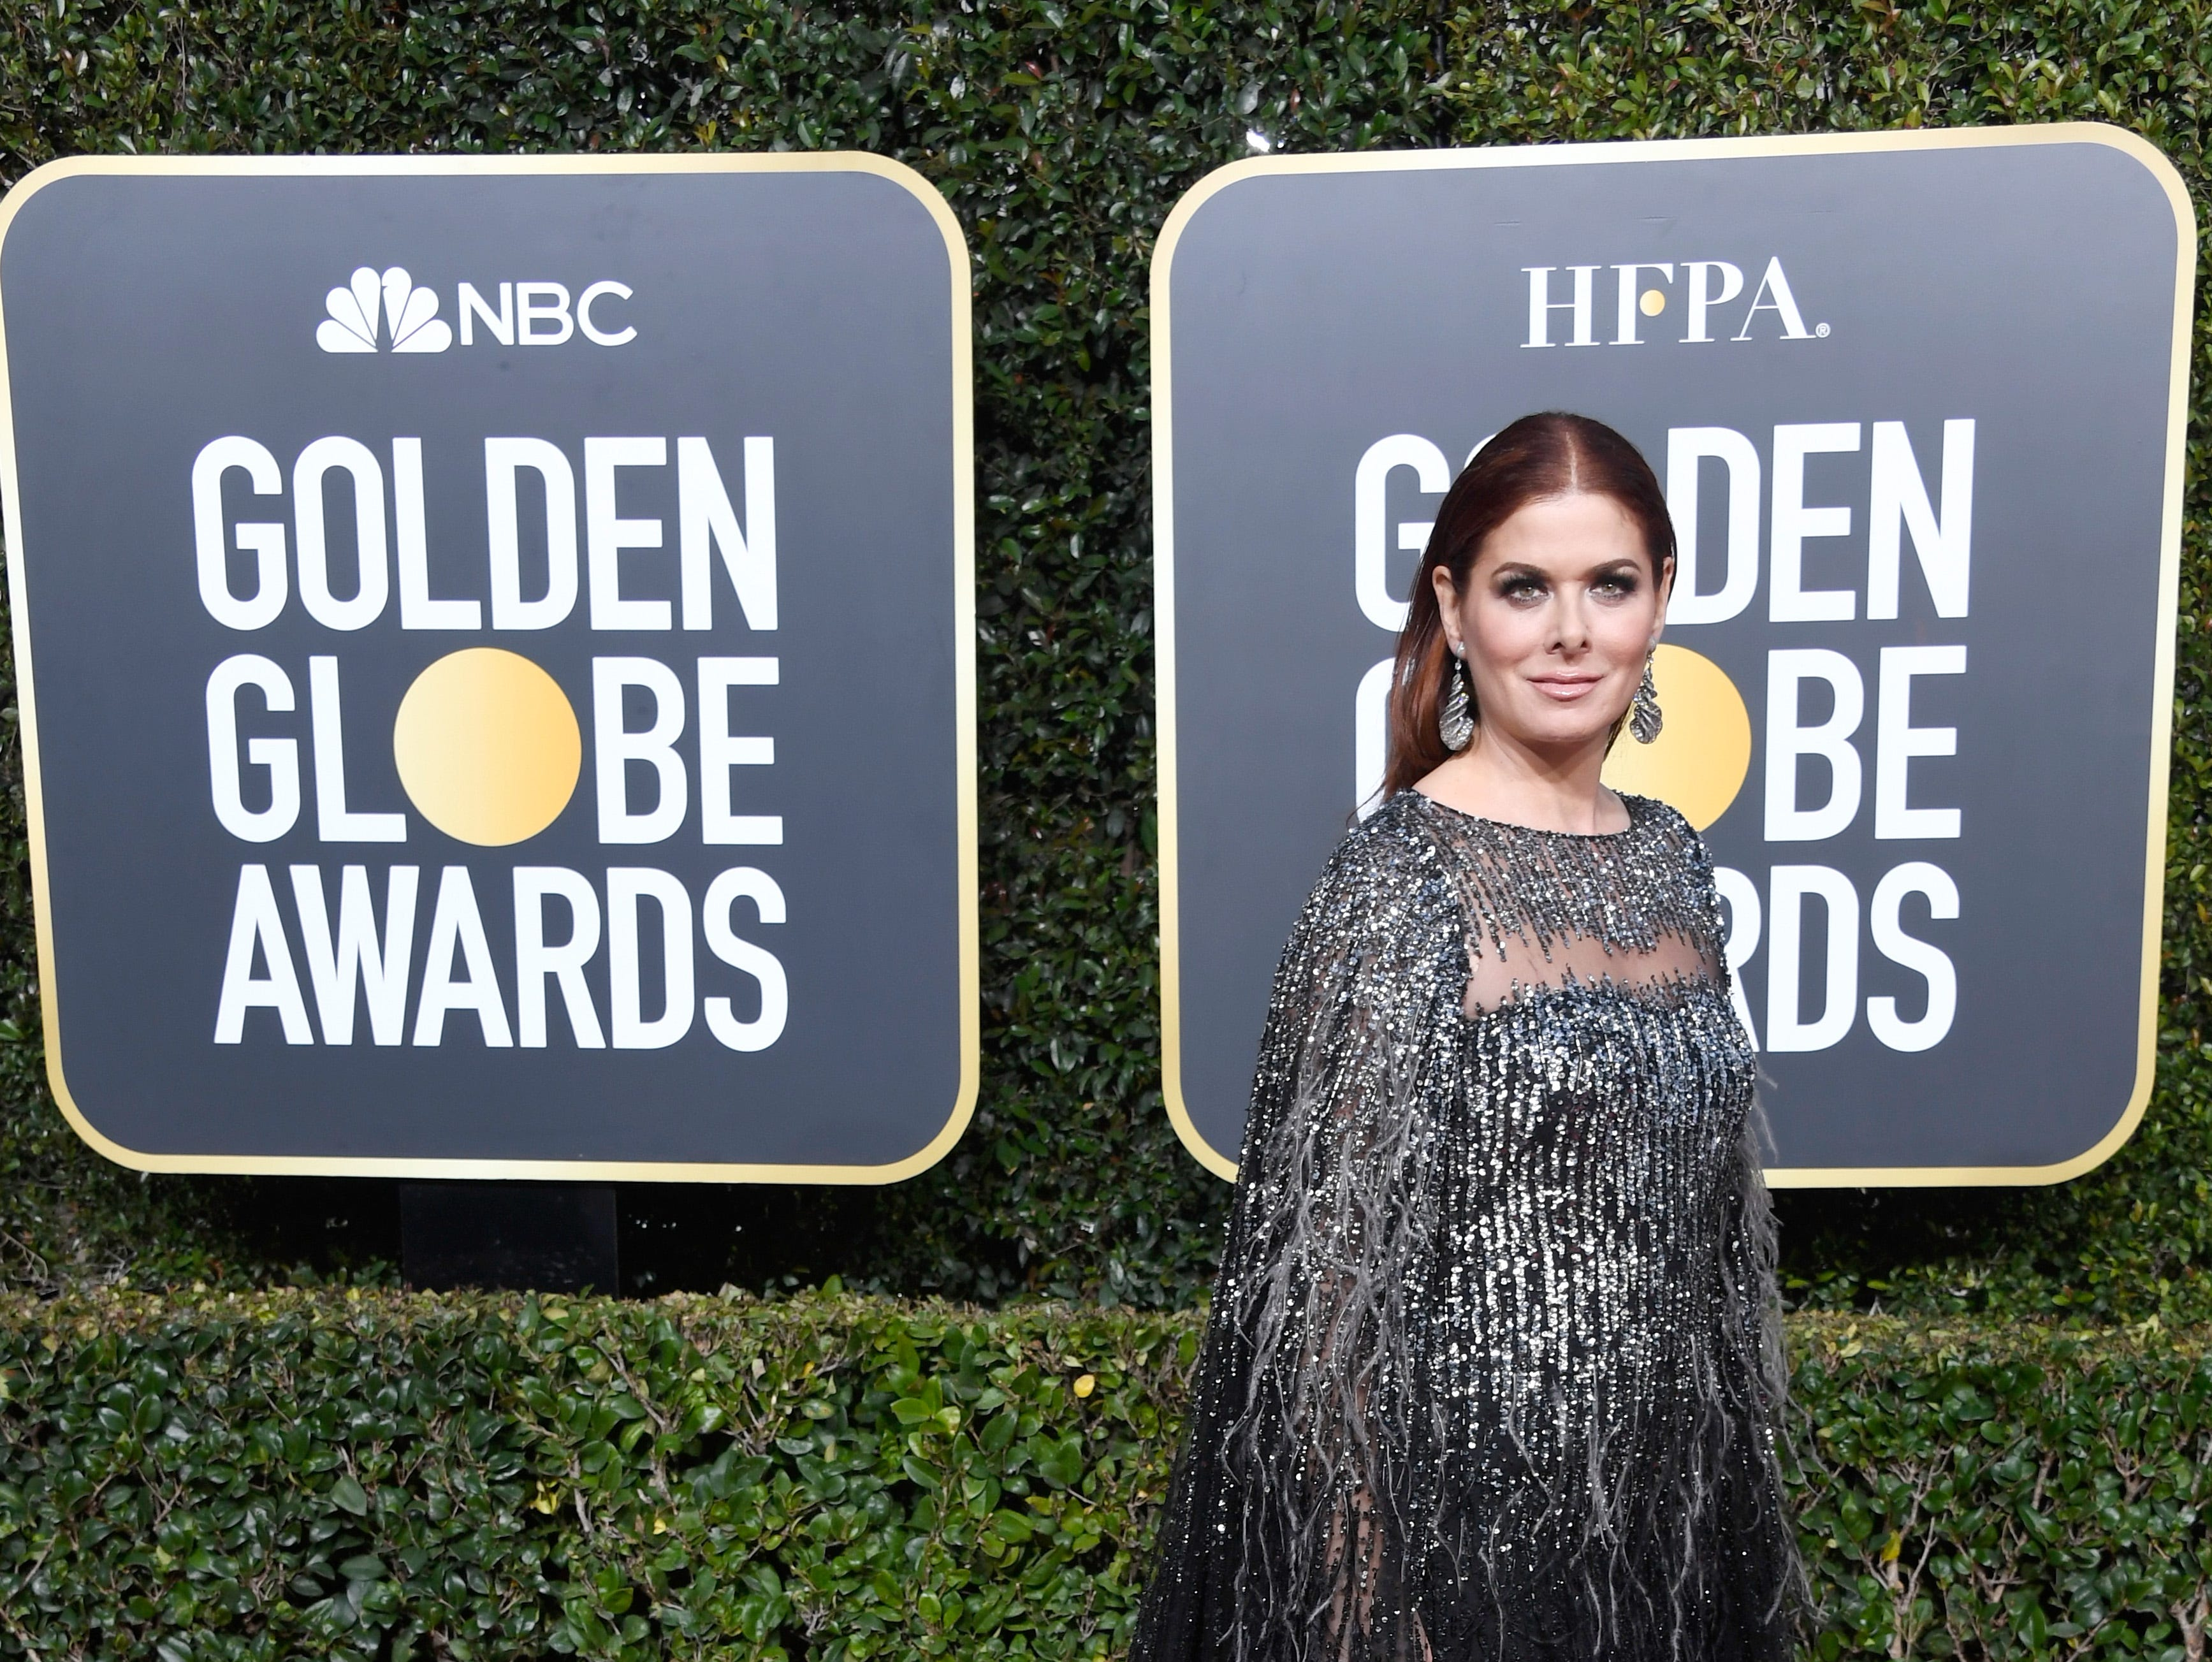 BEVERLY HILLS, CA - JANUARY 06:  Debra Messing attends the 76th Annual Golden Globe Awards at The Beverly Hilton Hotel on January 6, 2019 in Beverly Hills, California.  (Photo by Frazer Harrison/Getty Images) ORG XMIT: 775278352 ORIG FILE ID: 1078336822